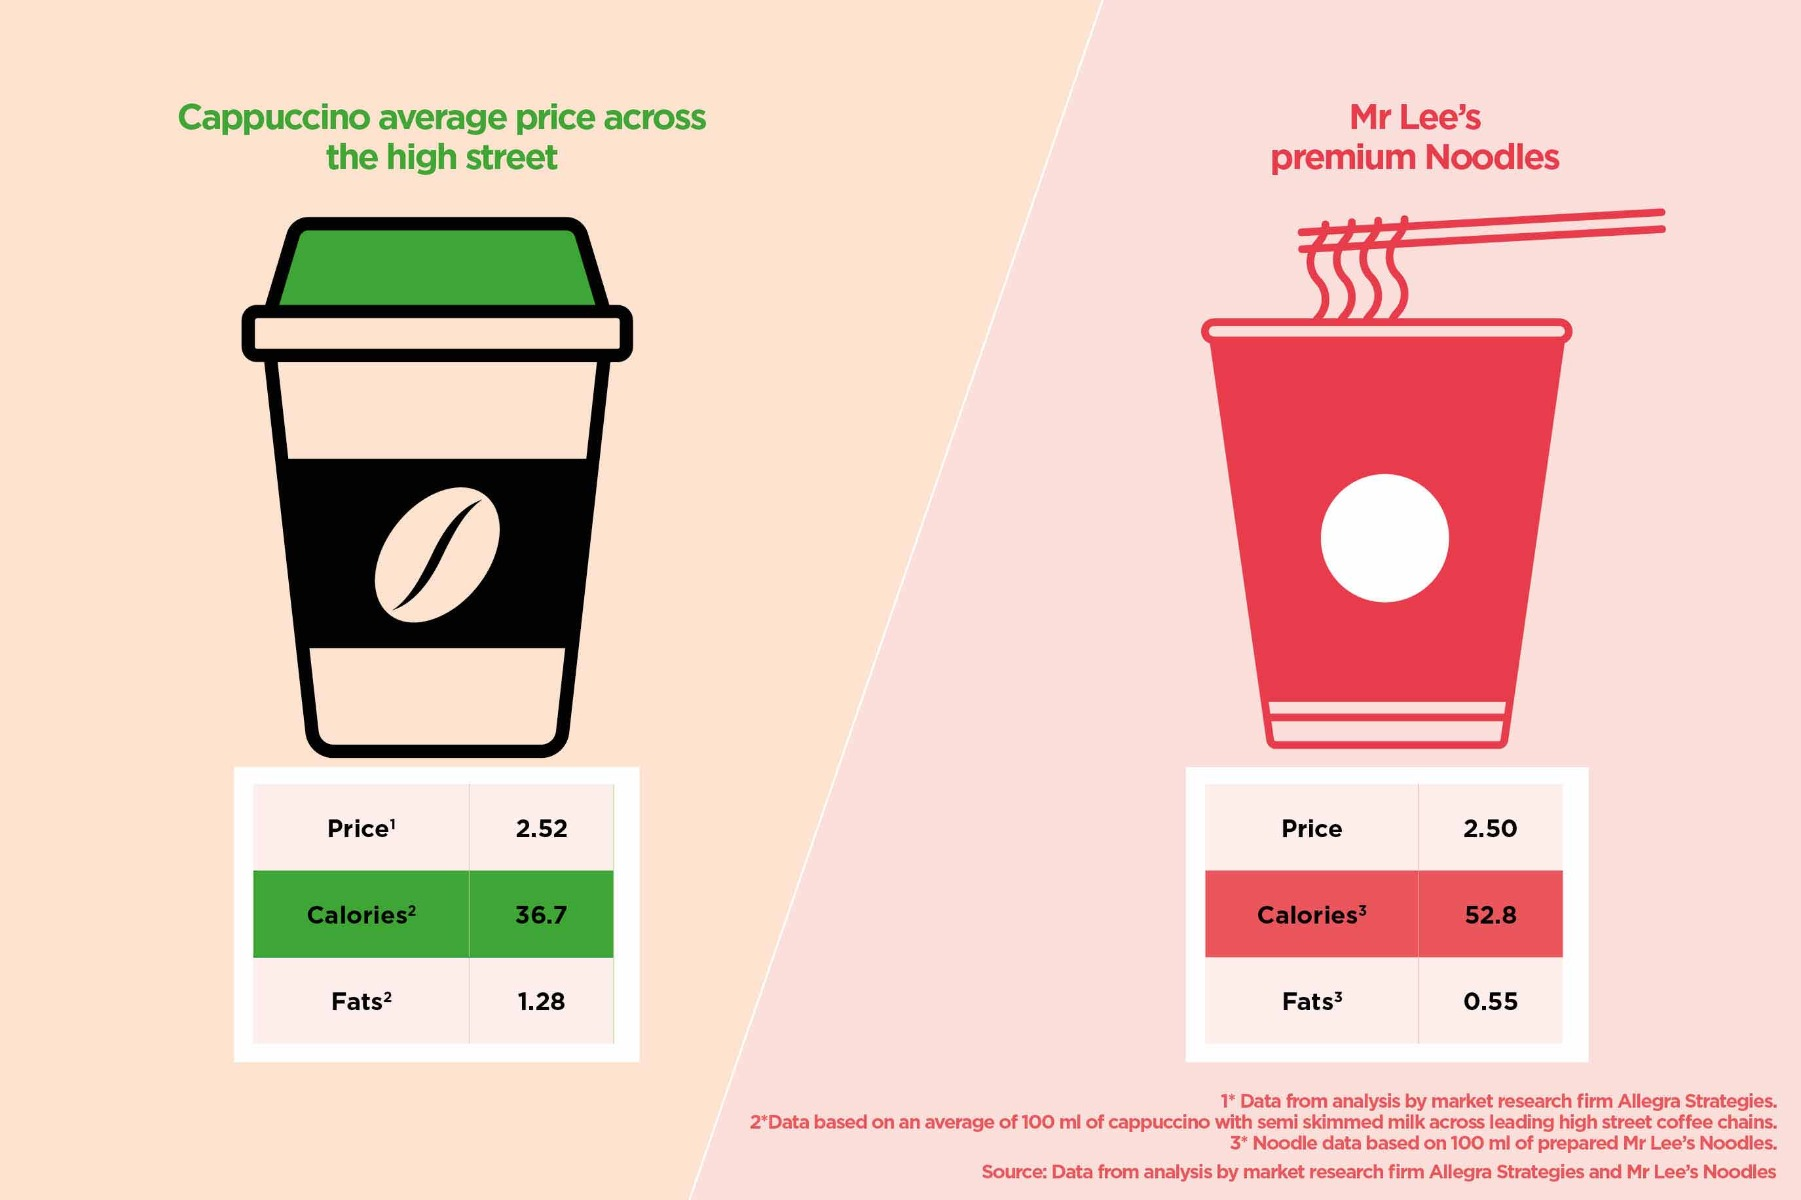 Comparison between average takeaway coffee and Mr Lee's premium noodles